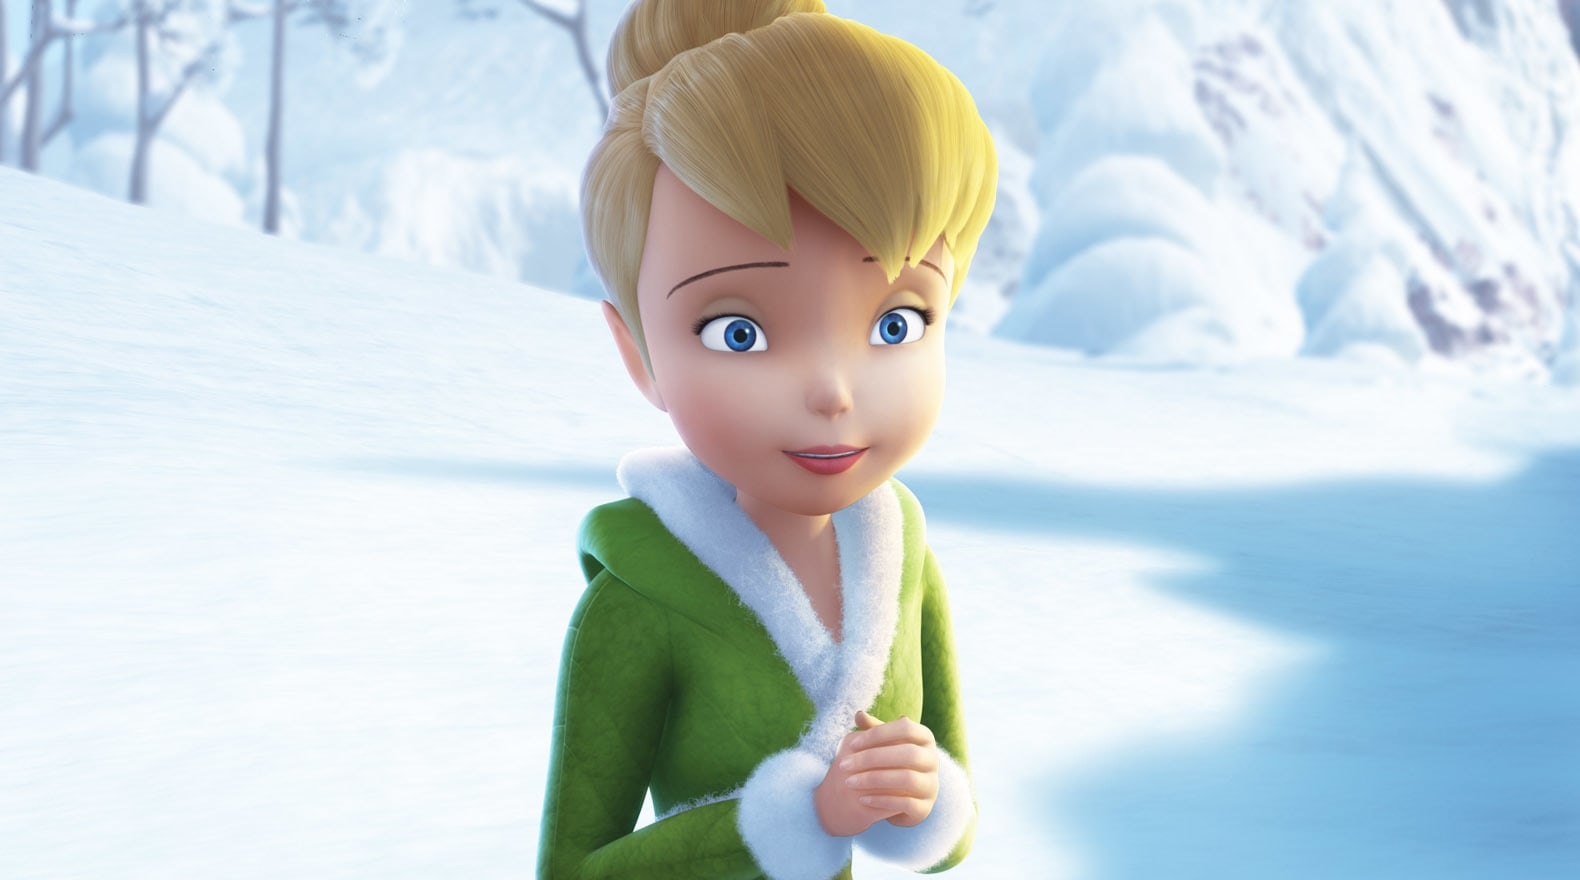 Tinker Bell goes to her new Frost Fairy friends for help saving the Pixie Dust Tree.